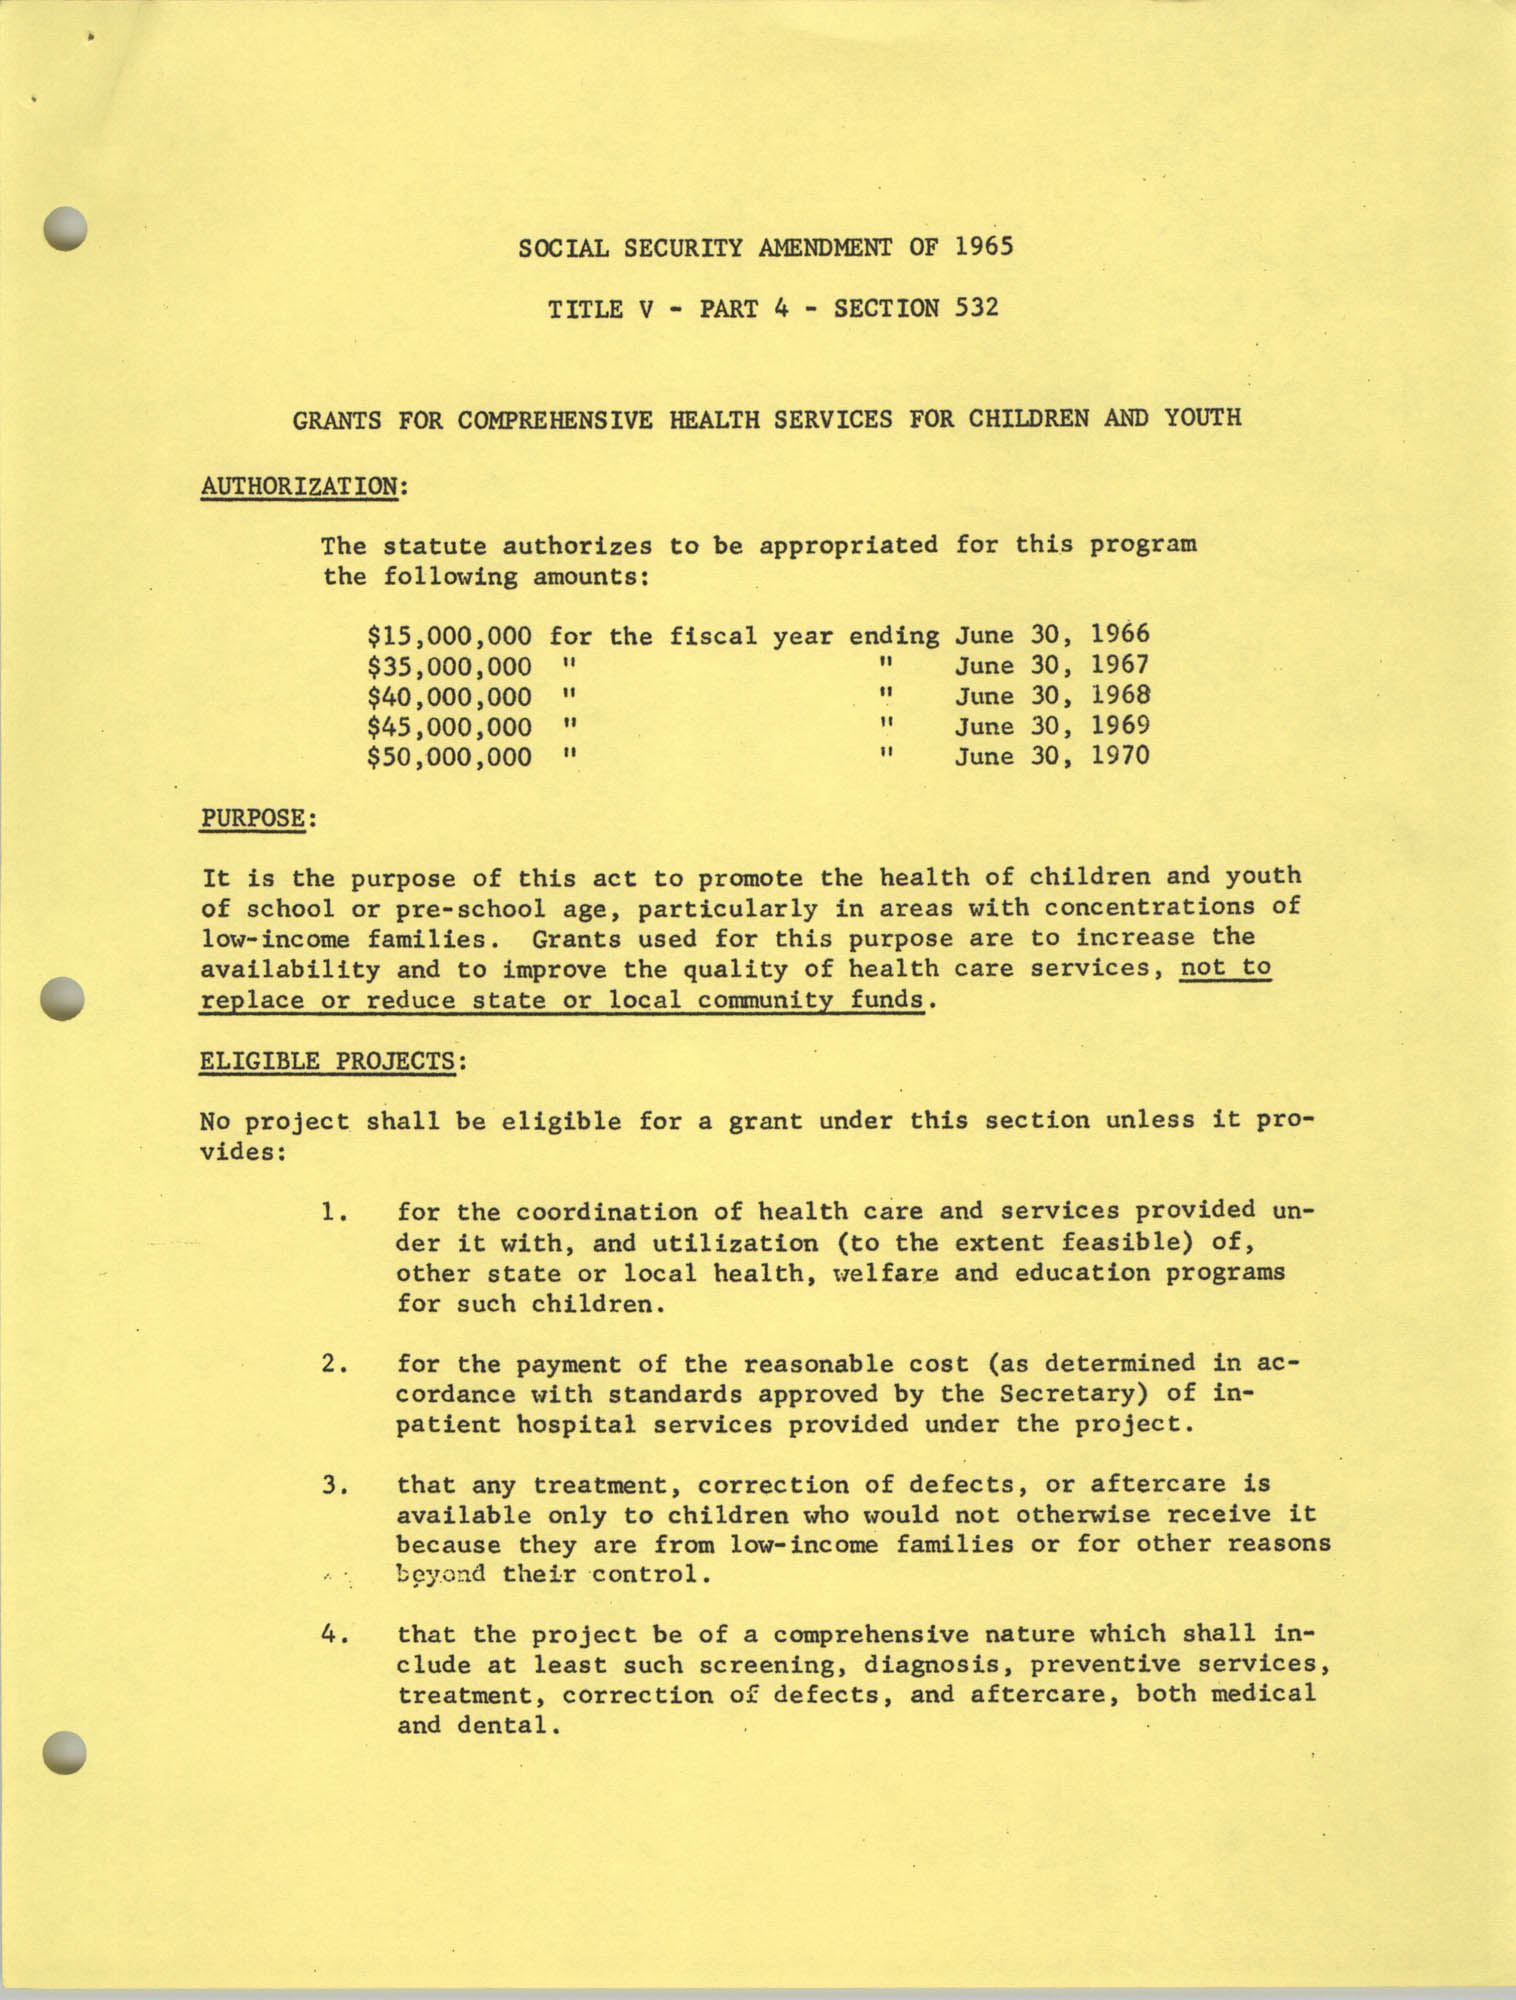 Social Security Amendment of 1965